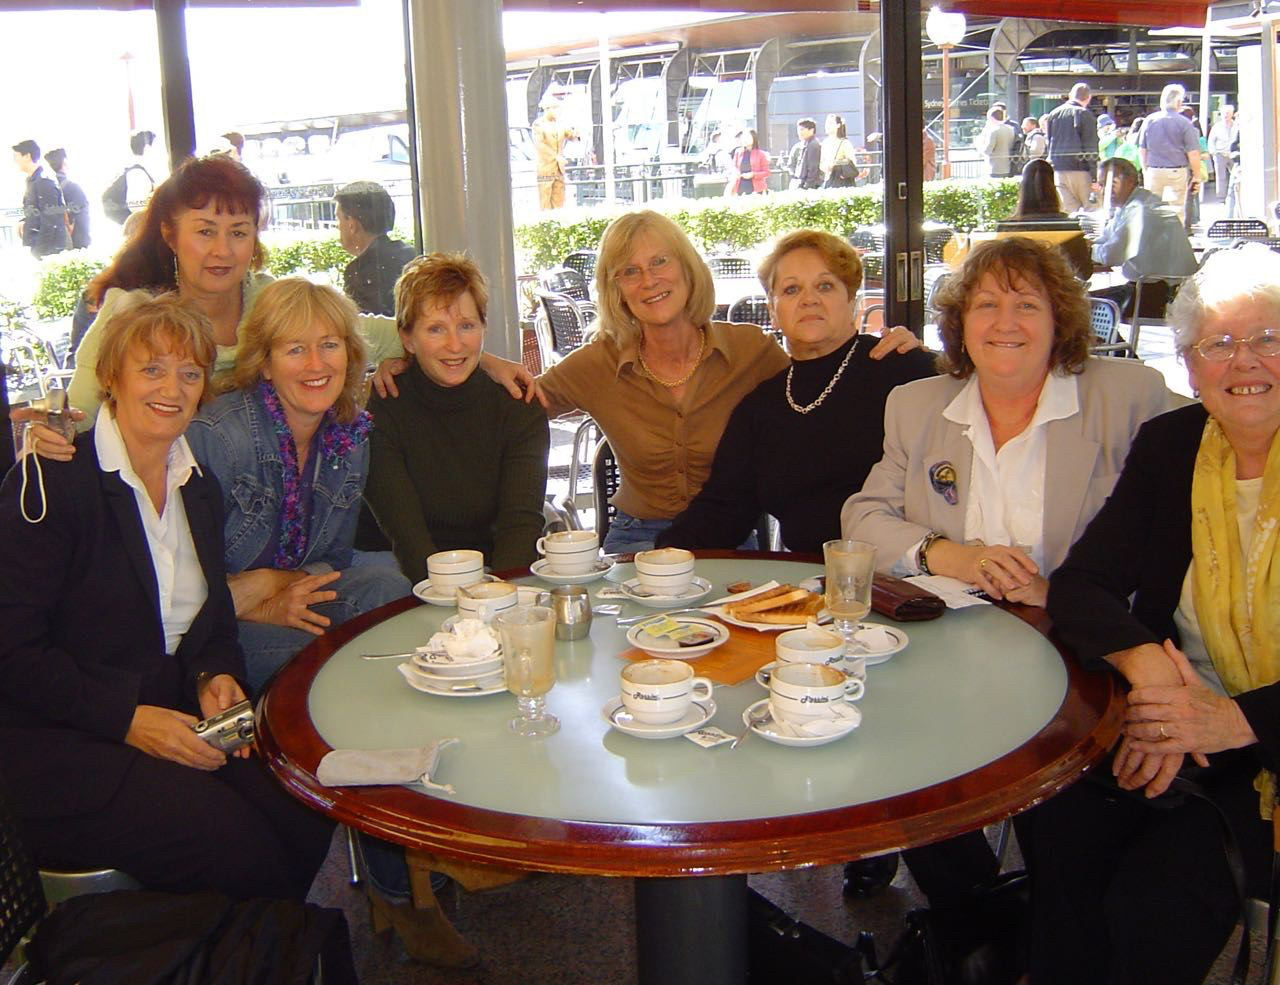 Students of the International College met at Circular Quay in Sydney